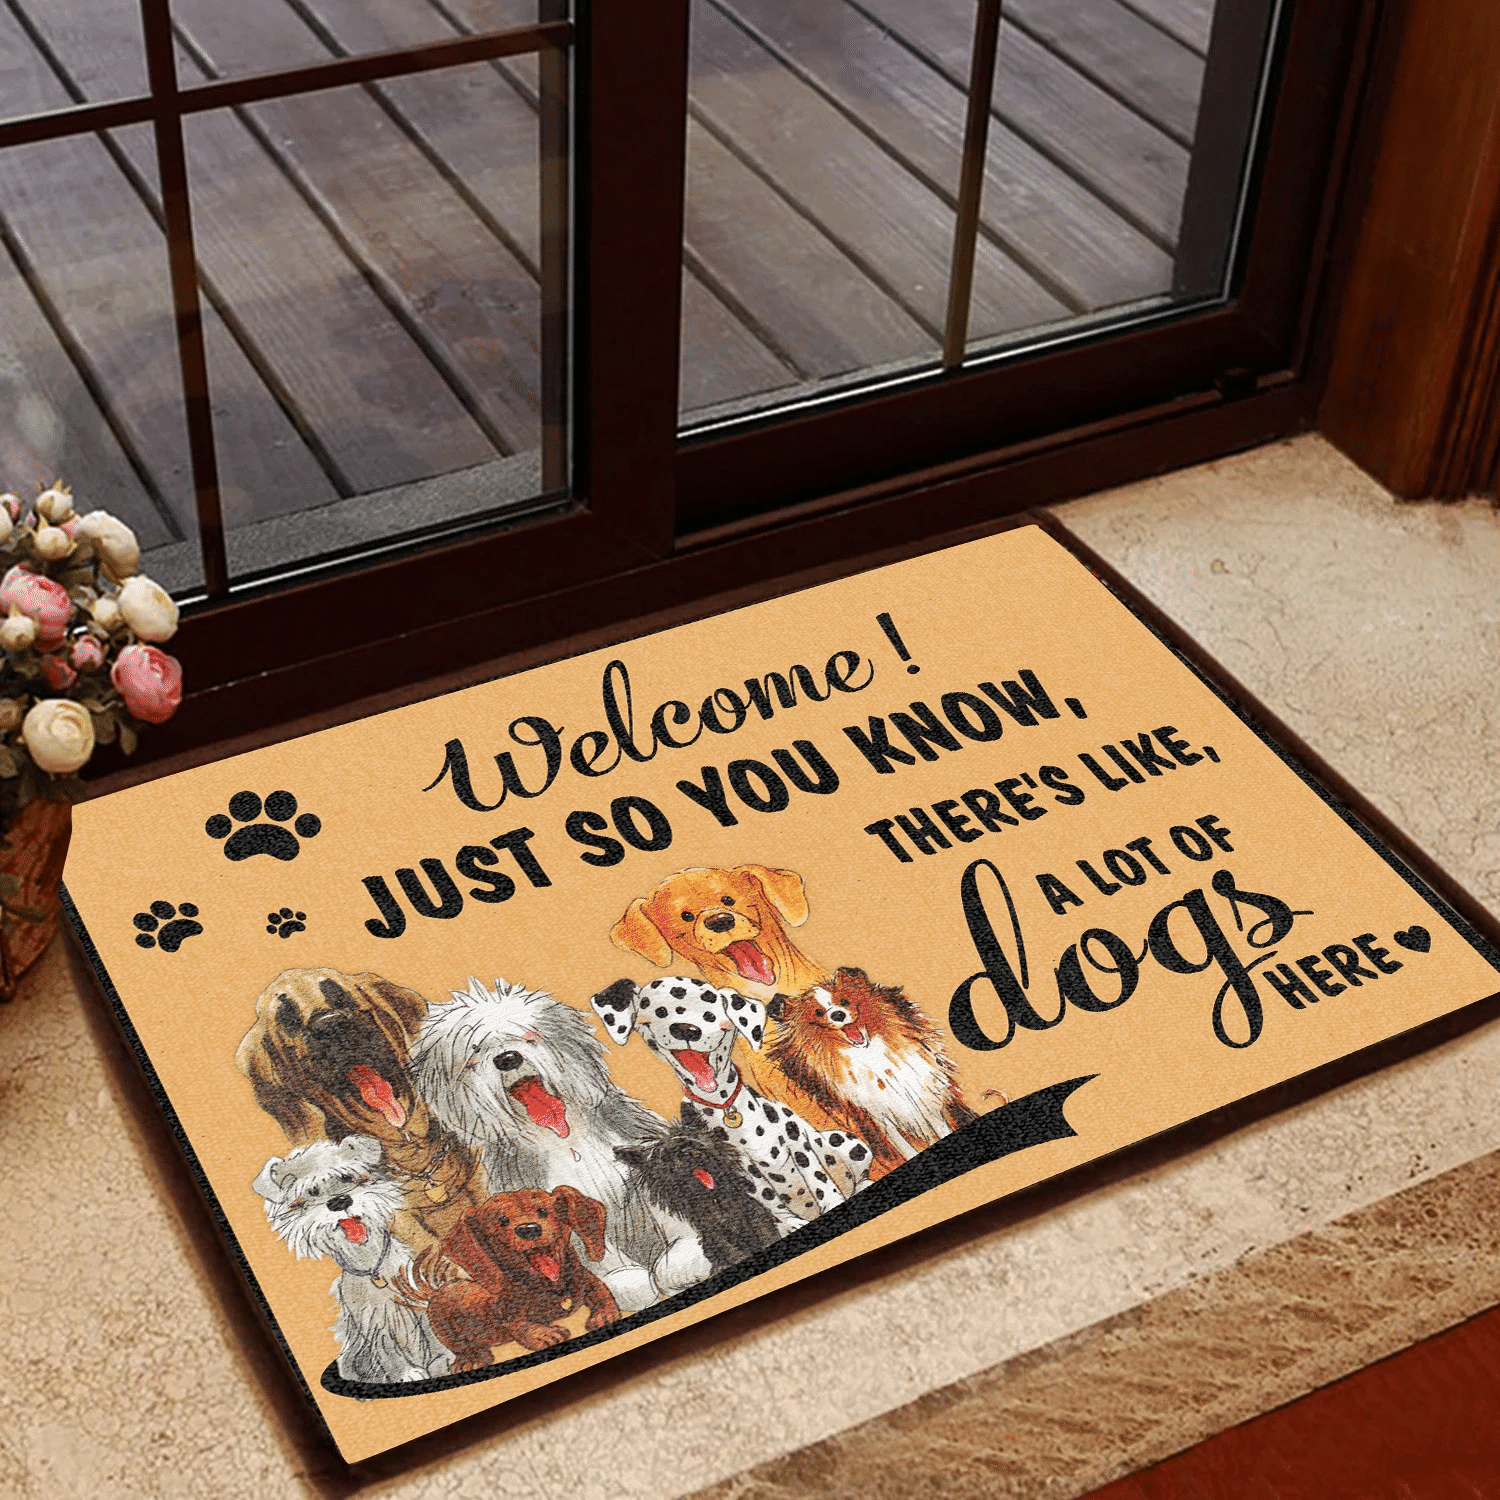 Dog Lovers Door mat Just So You There Like A Lot of Dogs here